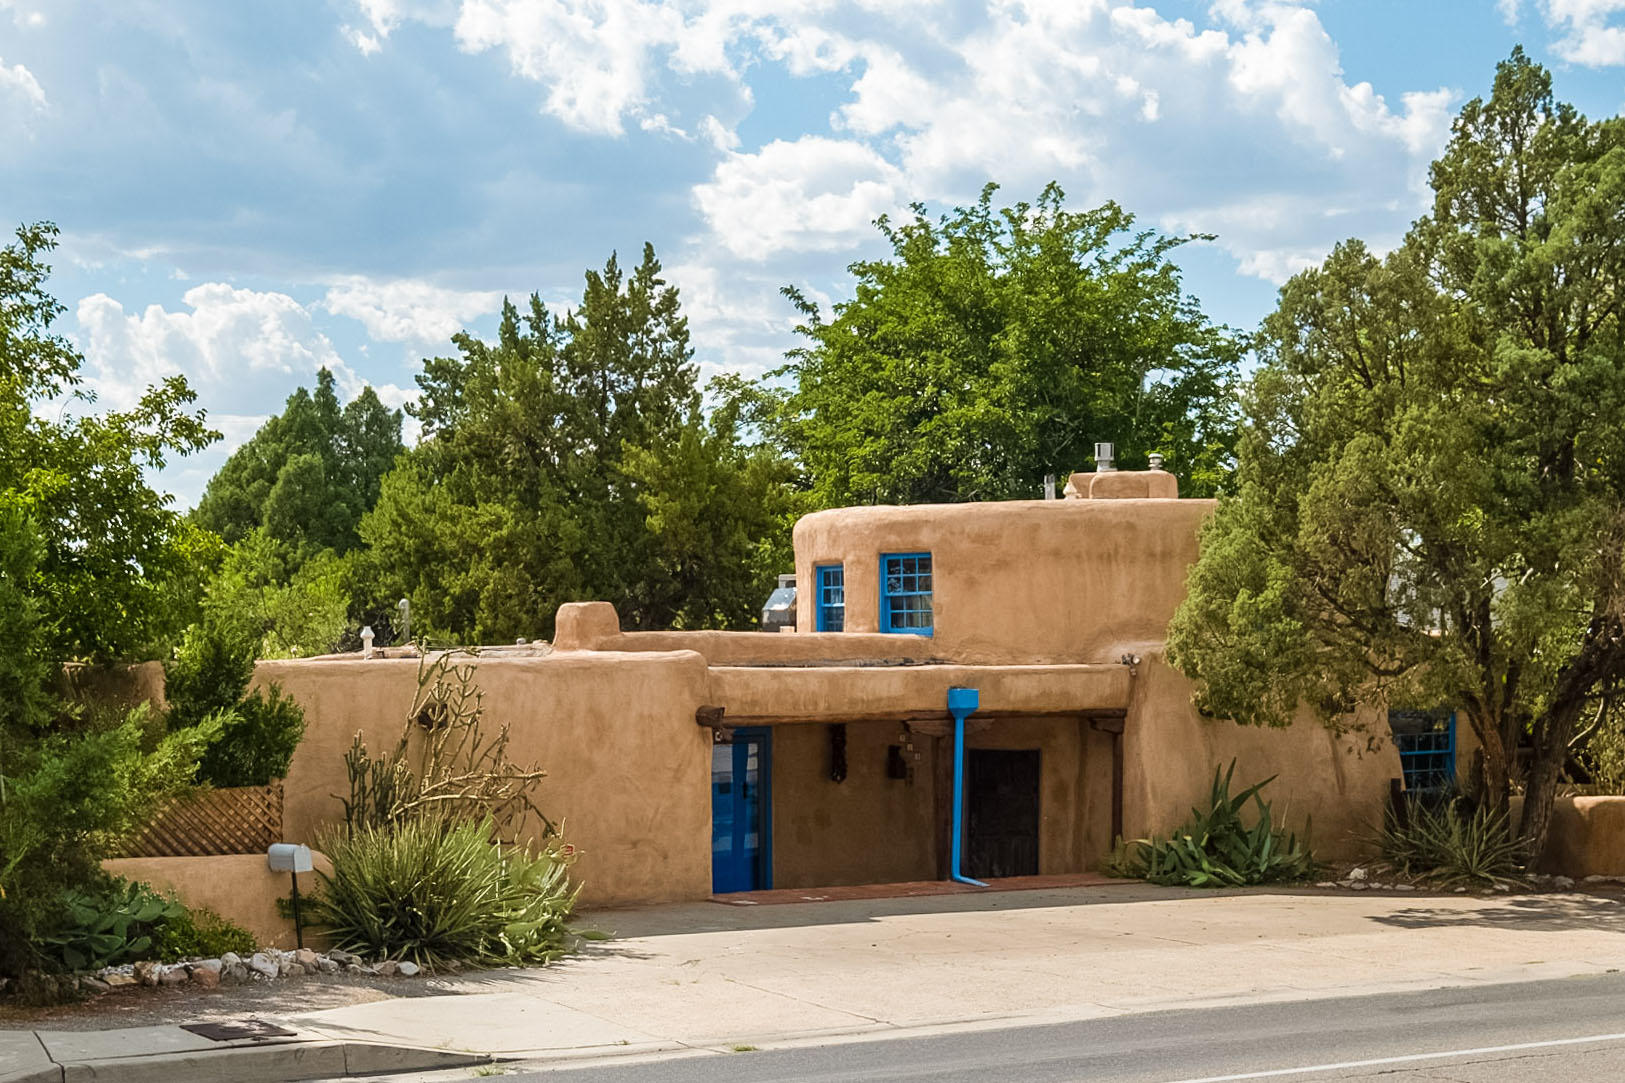 Fantastic Nob Hill location, close to food, shopping, entertainment, UNM, CNM, and hospitals. This wonderfully artistic home was constructed around a water tank from 1916. This home has classic charm mixed with modern amenities, to include a tankless water heater in the main house and the 400+ sf. Casita in the back of the home. There are numerous unique architectural details throughout the home. Artistic light features, nichos, Saltillo floors, and Vigas give this home a classic charm. The oversized lot features a garden area with fruit trees that is a rarity in such a centrally located property.There are also many parking options for those who like to entertain. Ample parking is in front of the property with access to the back yard located at the south of the home, as well as the alley